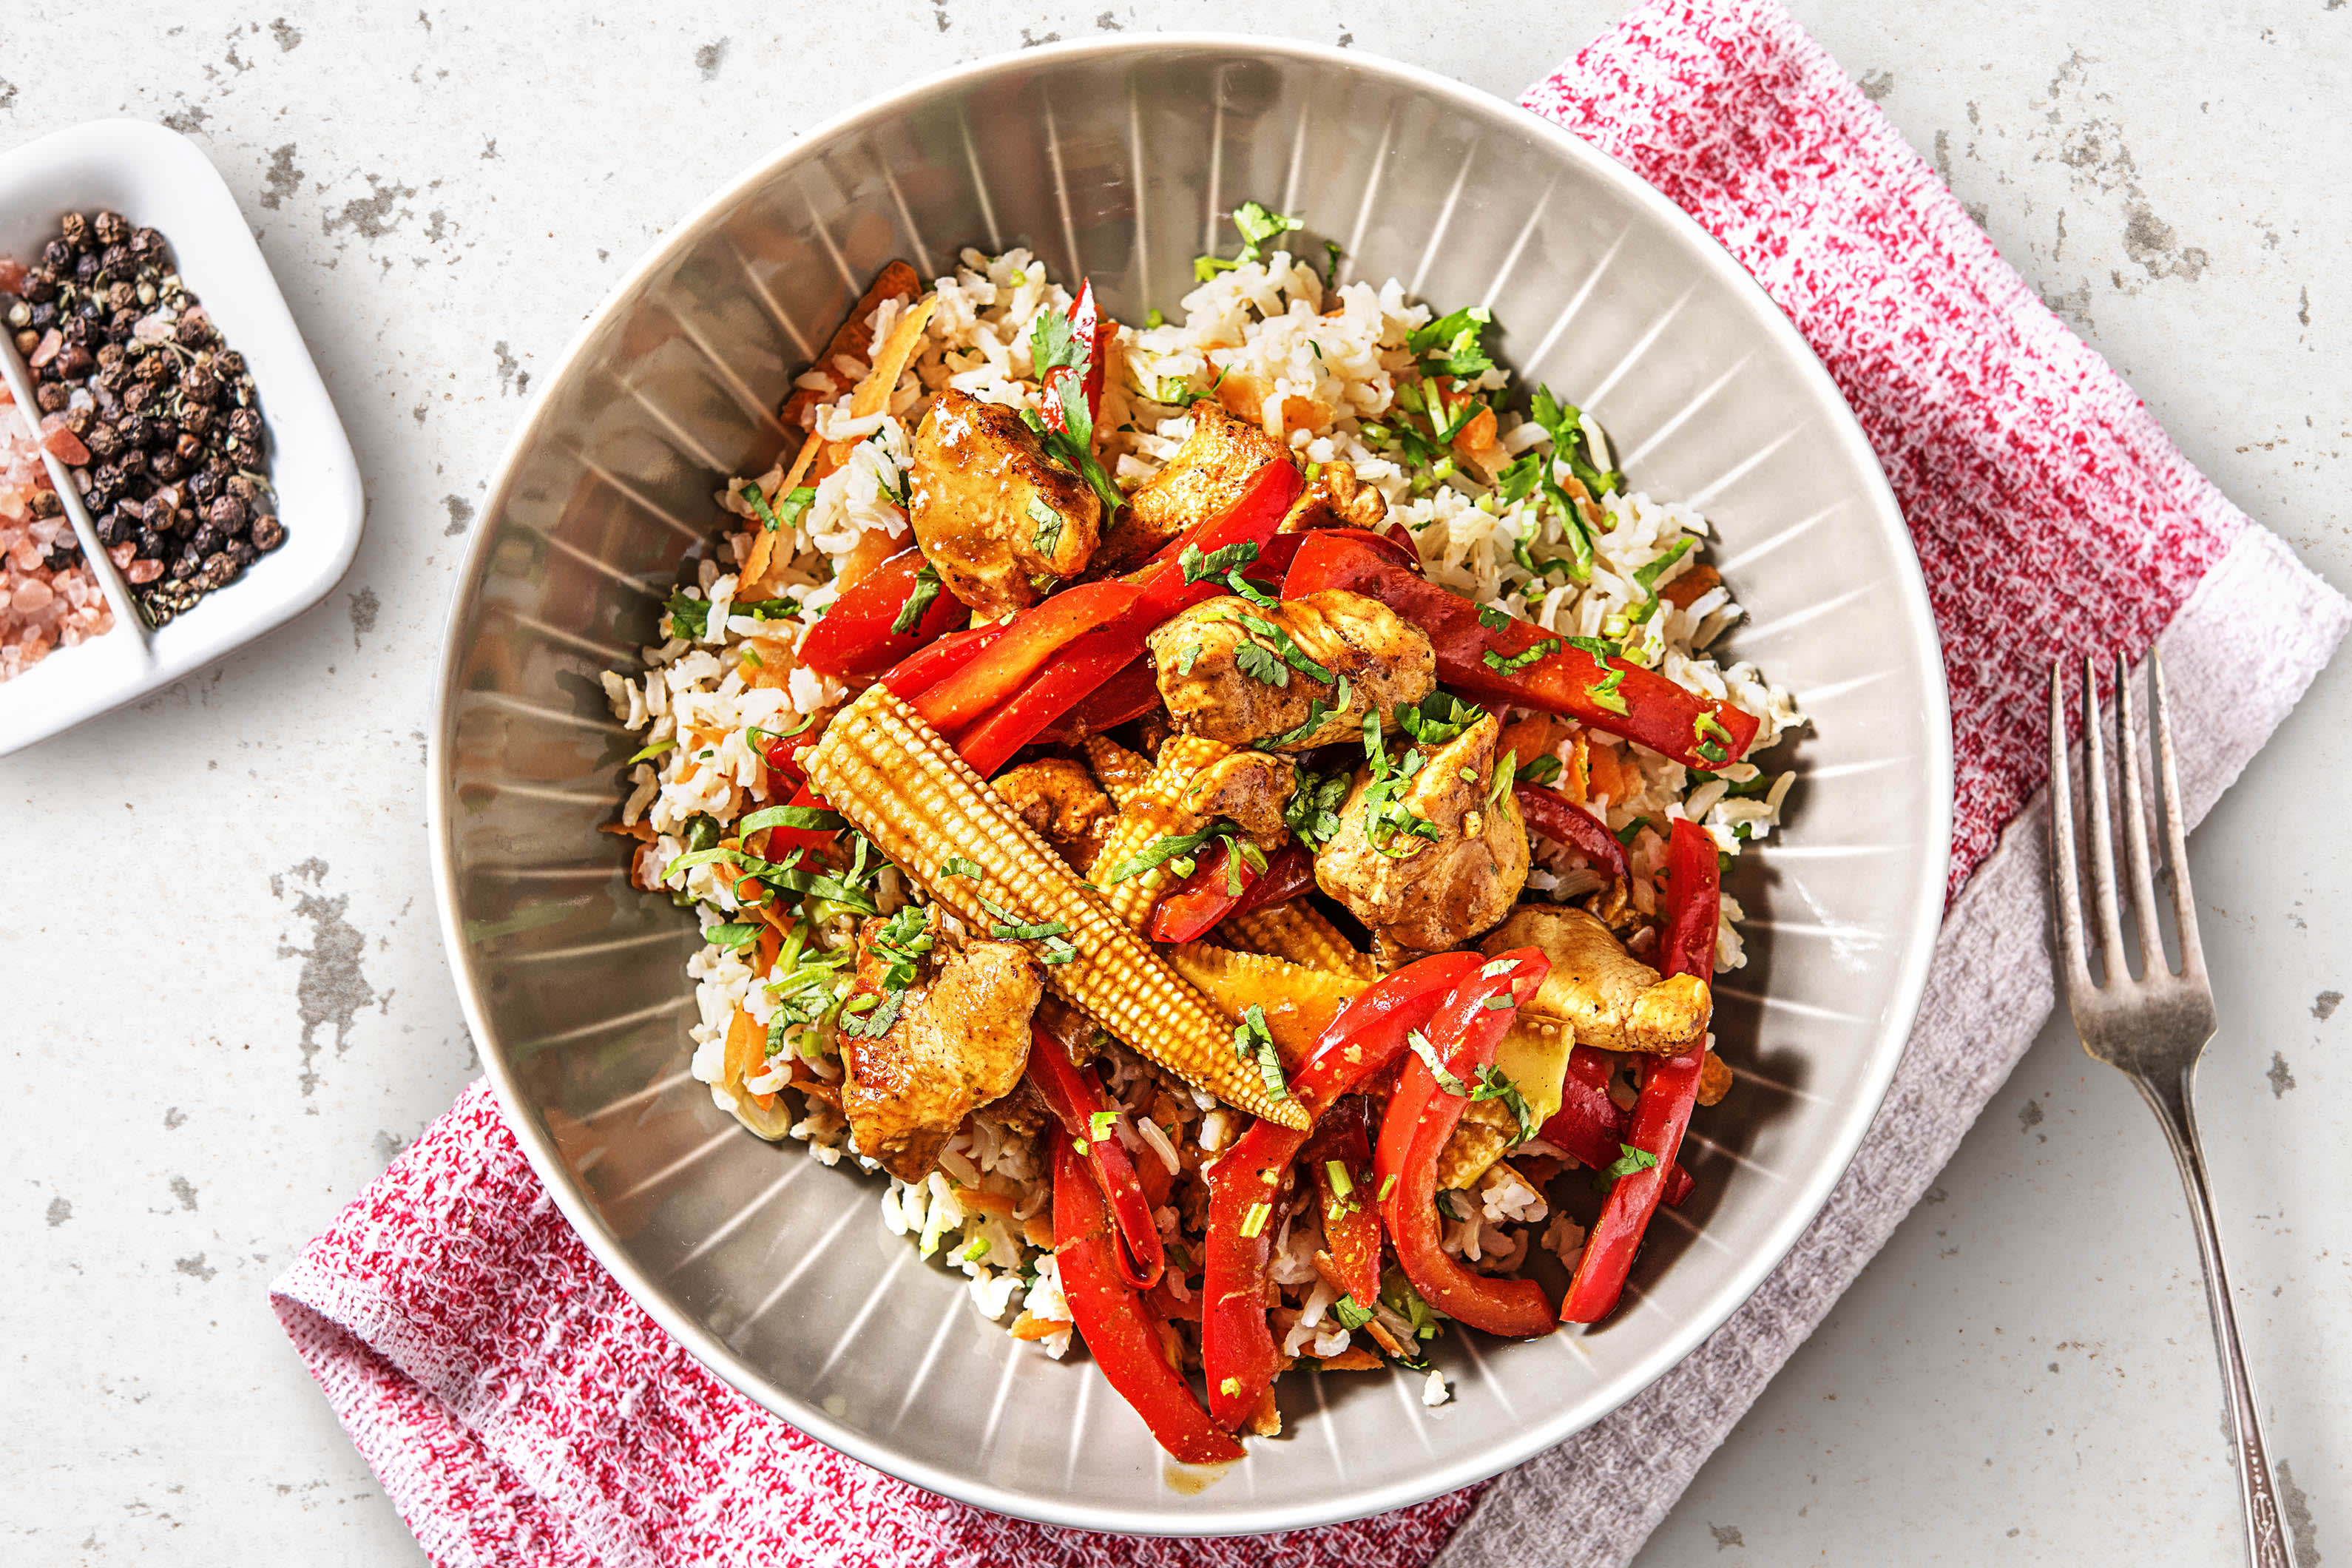 Five Spice Chicken Stir-Fry